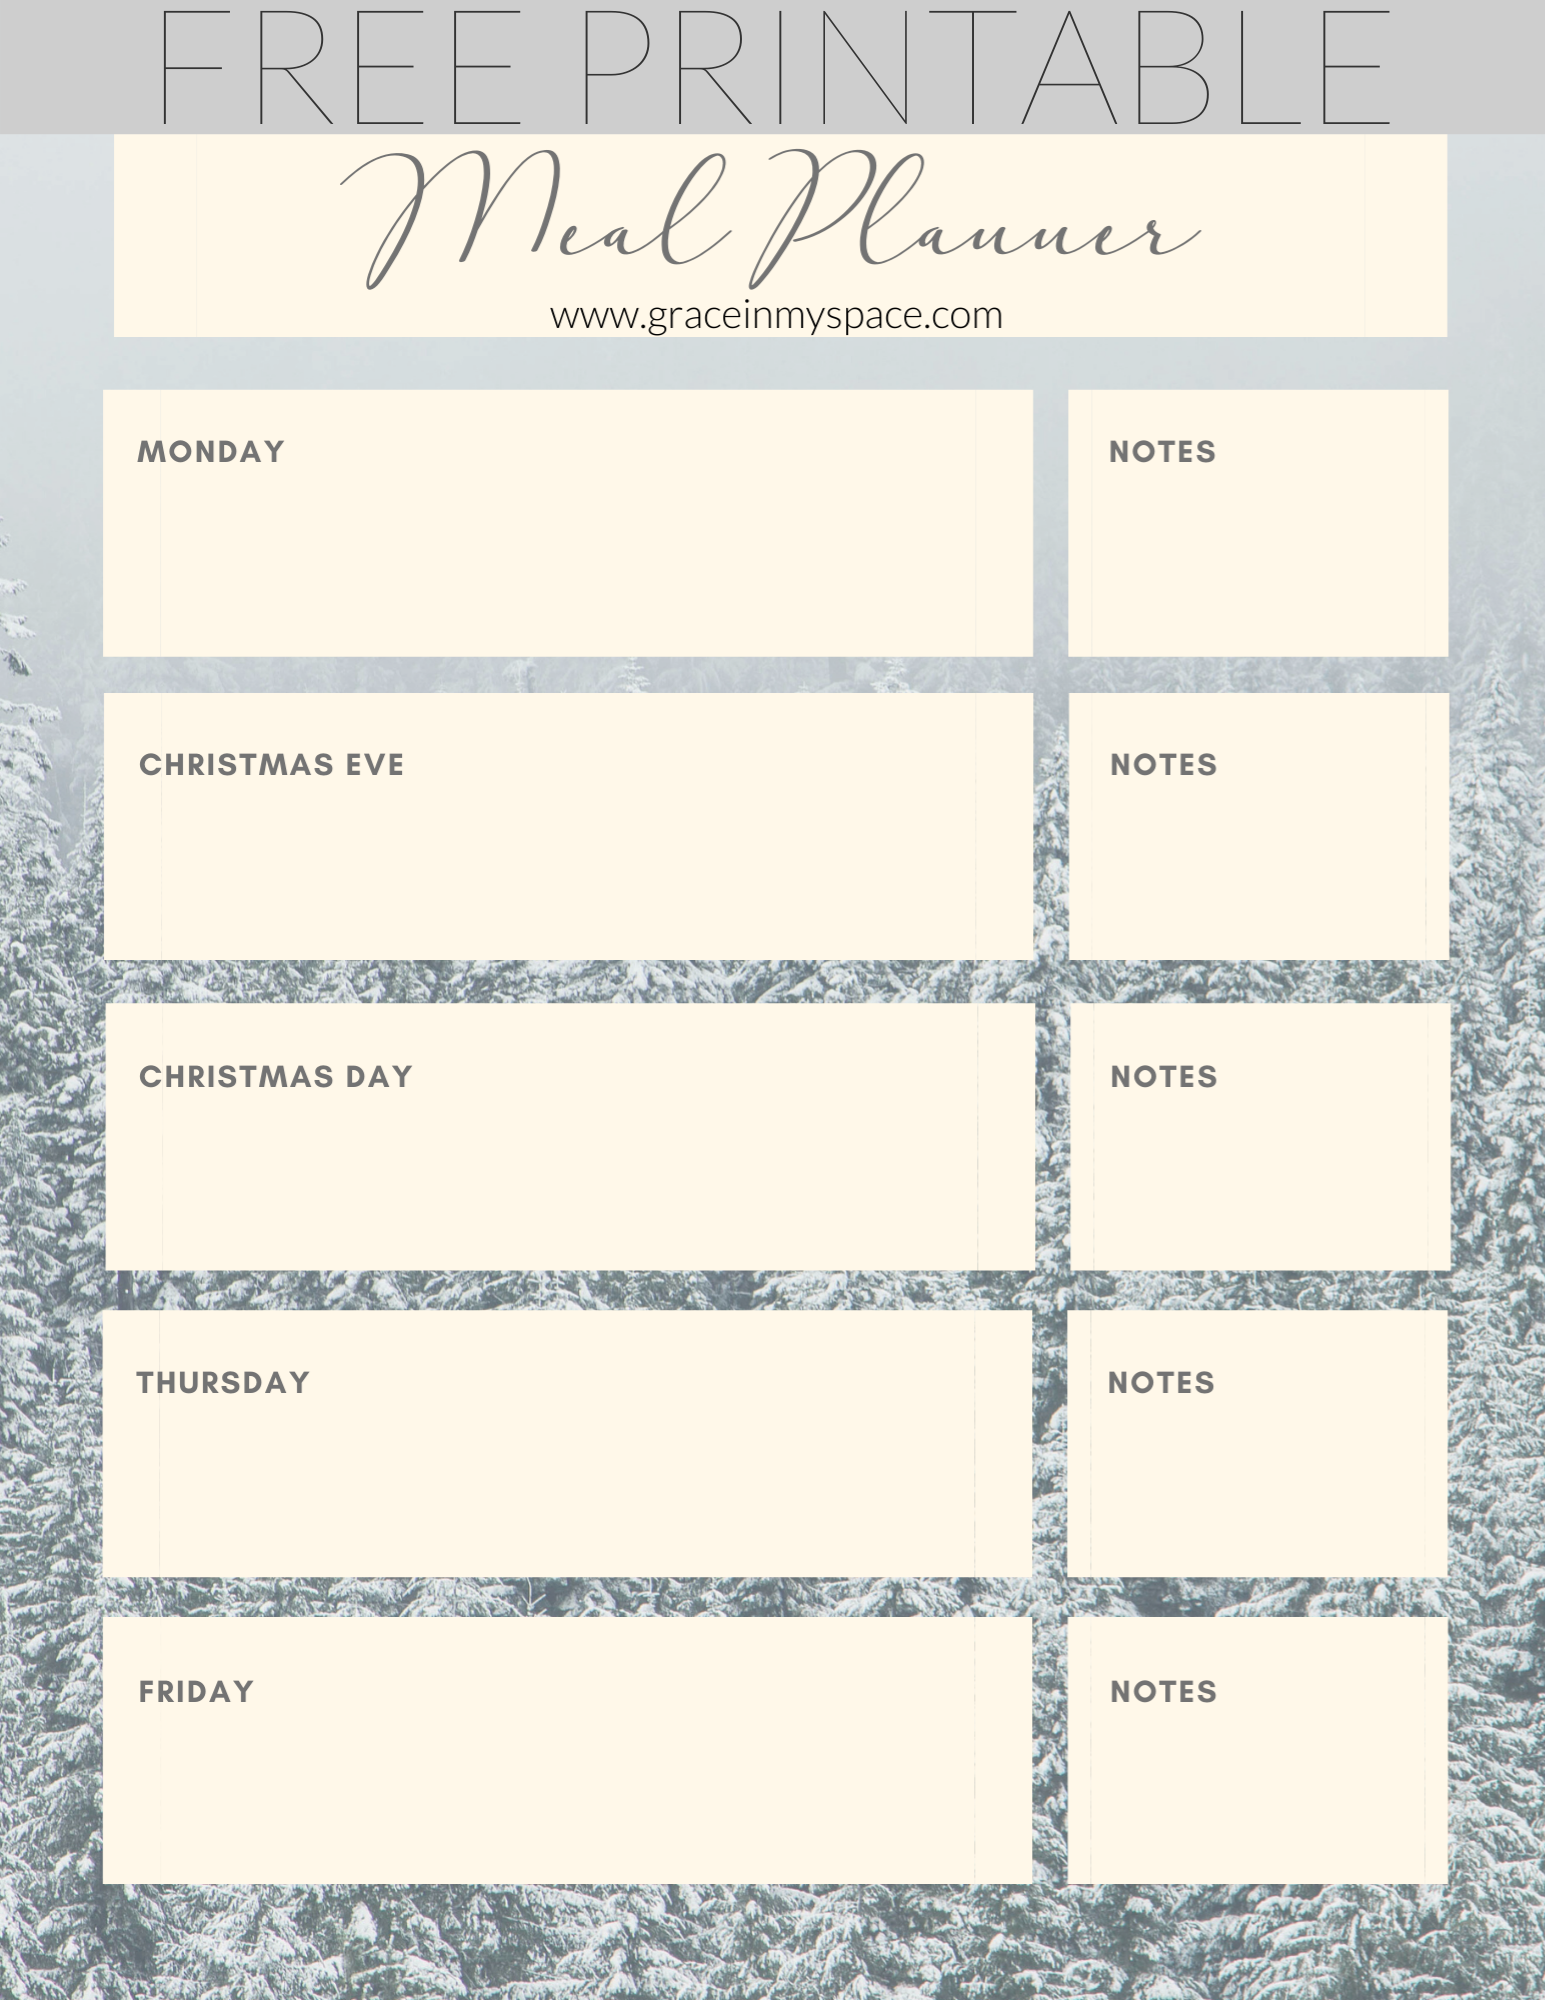 The holiday season is crazy enough without adding 100 items to your to-do list! These 3 simple Christmas preparations are all you need to be a 5 star host.